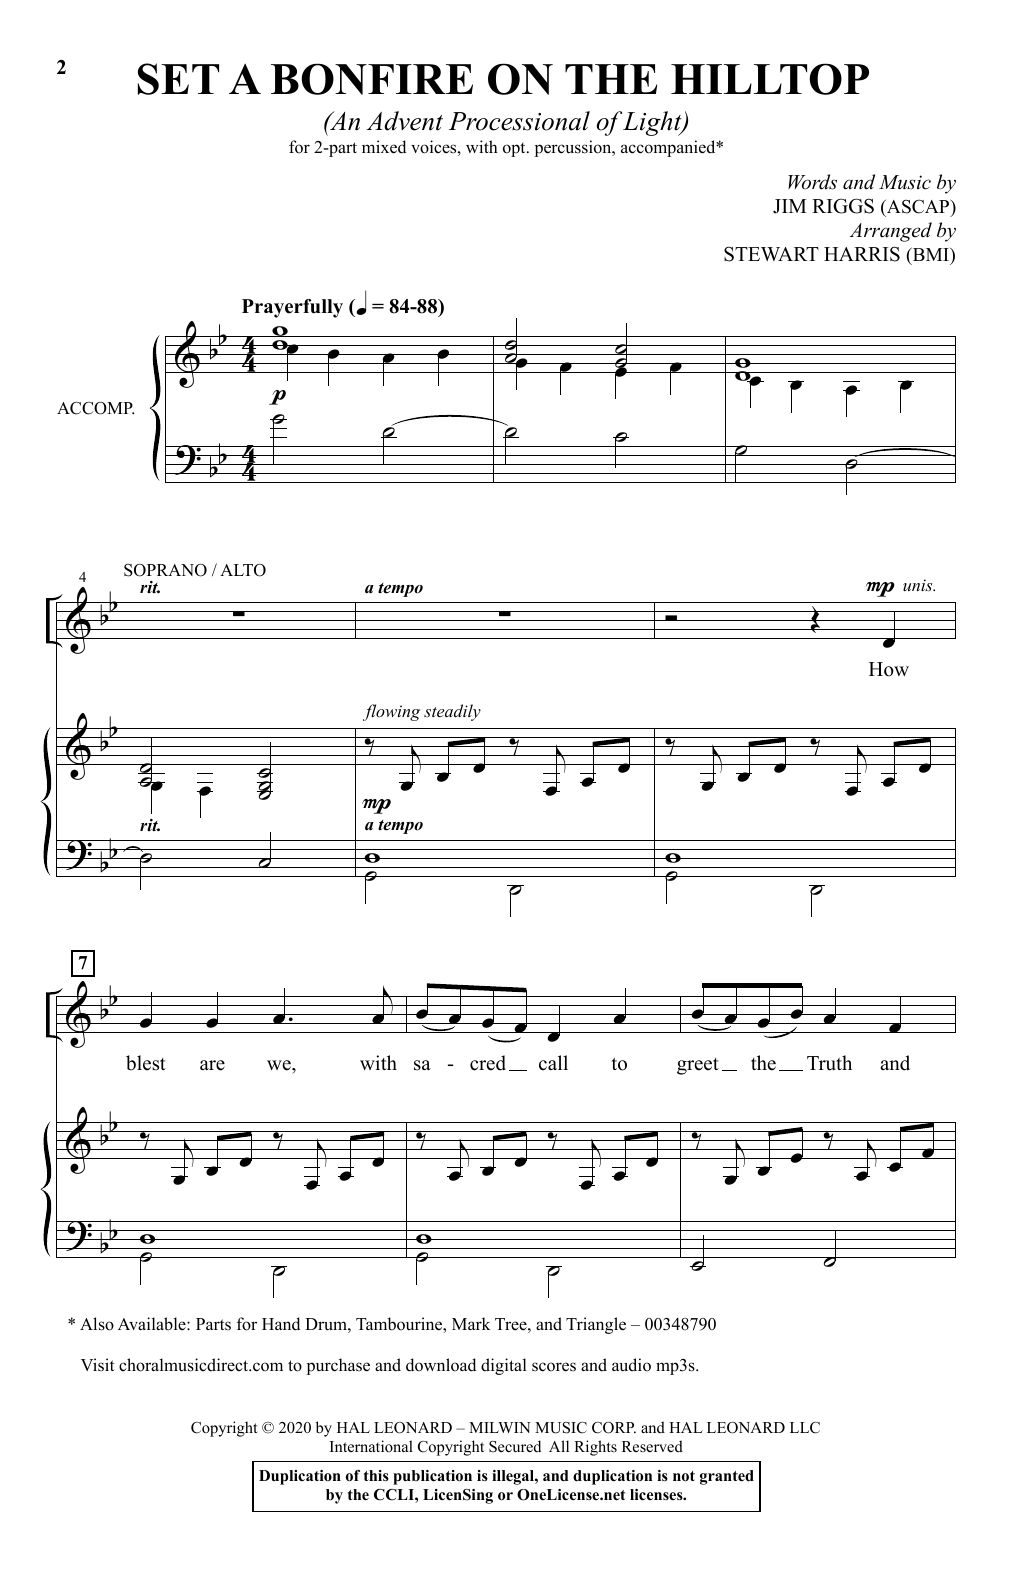 Download Jim Riggs 'Set A Bonfire On The Hilltop (An Advent Processional Of Light) (arr. Stewart Harris)' Digital Sheet Music Notes & Chords and start playing in minutes